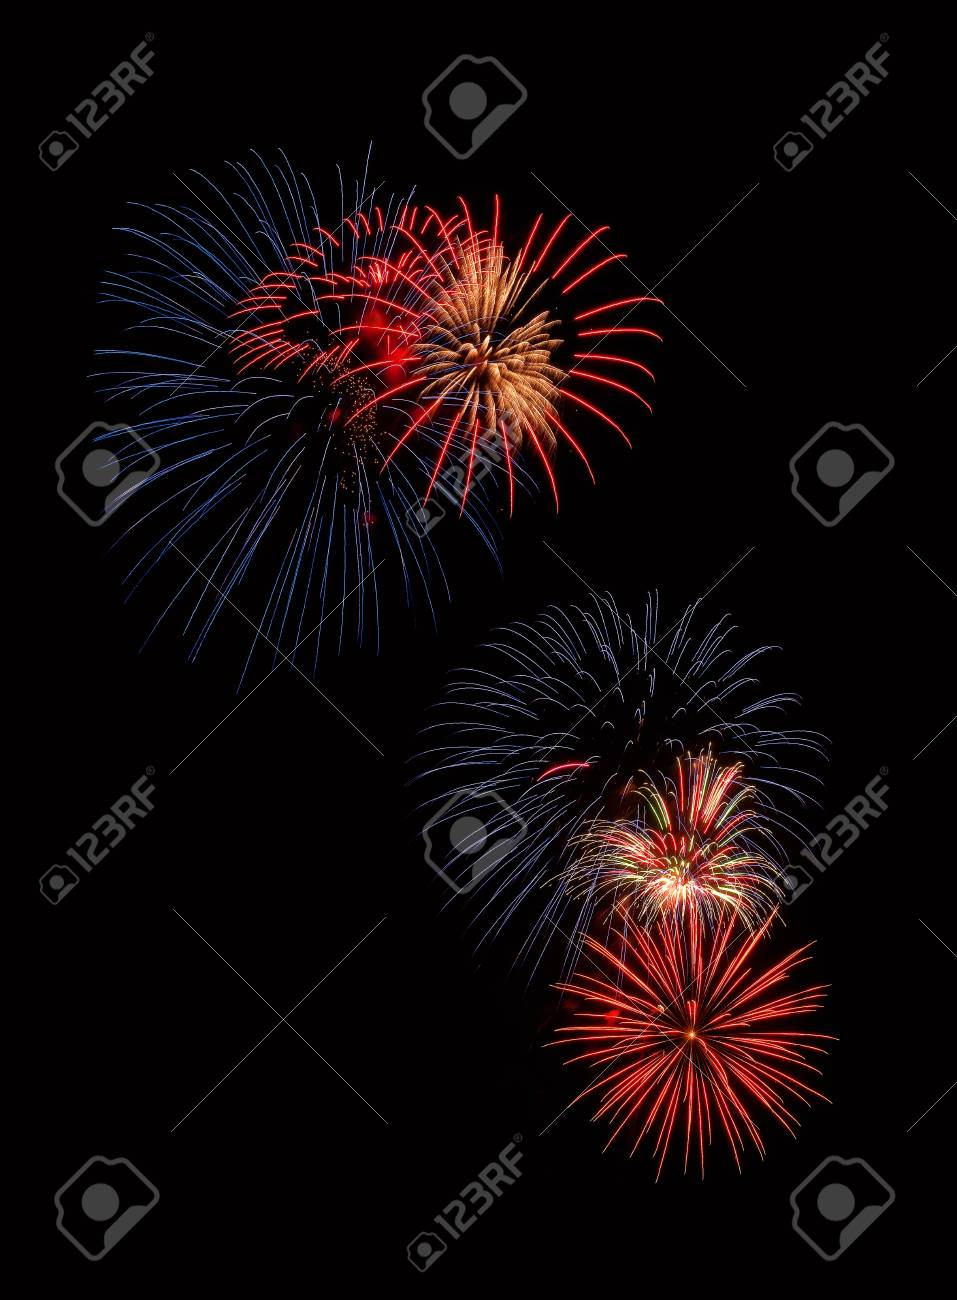 Colorful fireworks celebration on Independence Day Stock Photo - 13959121